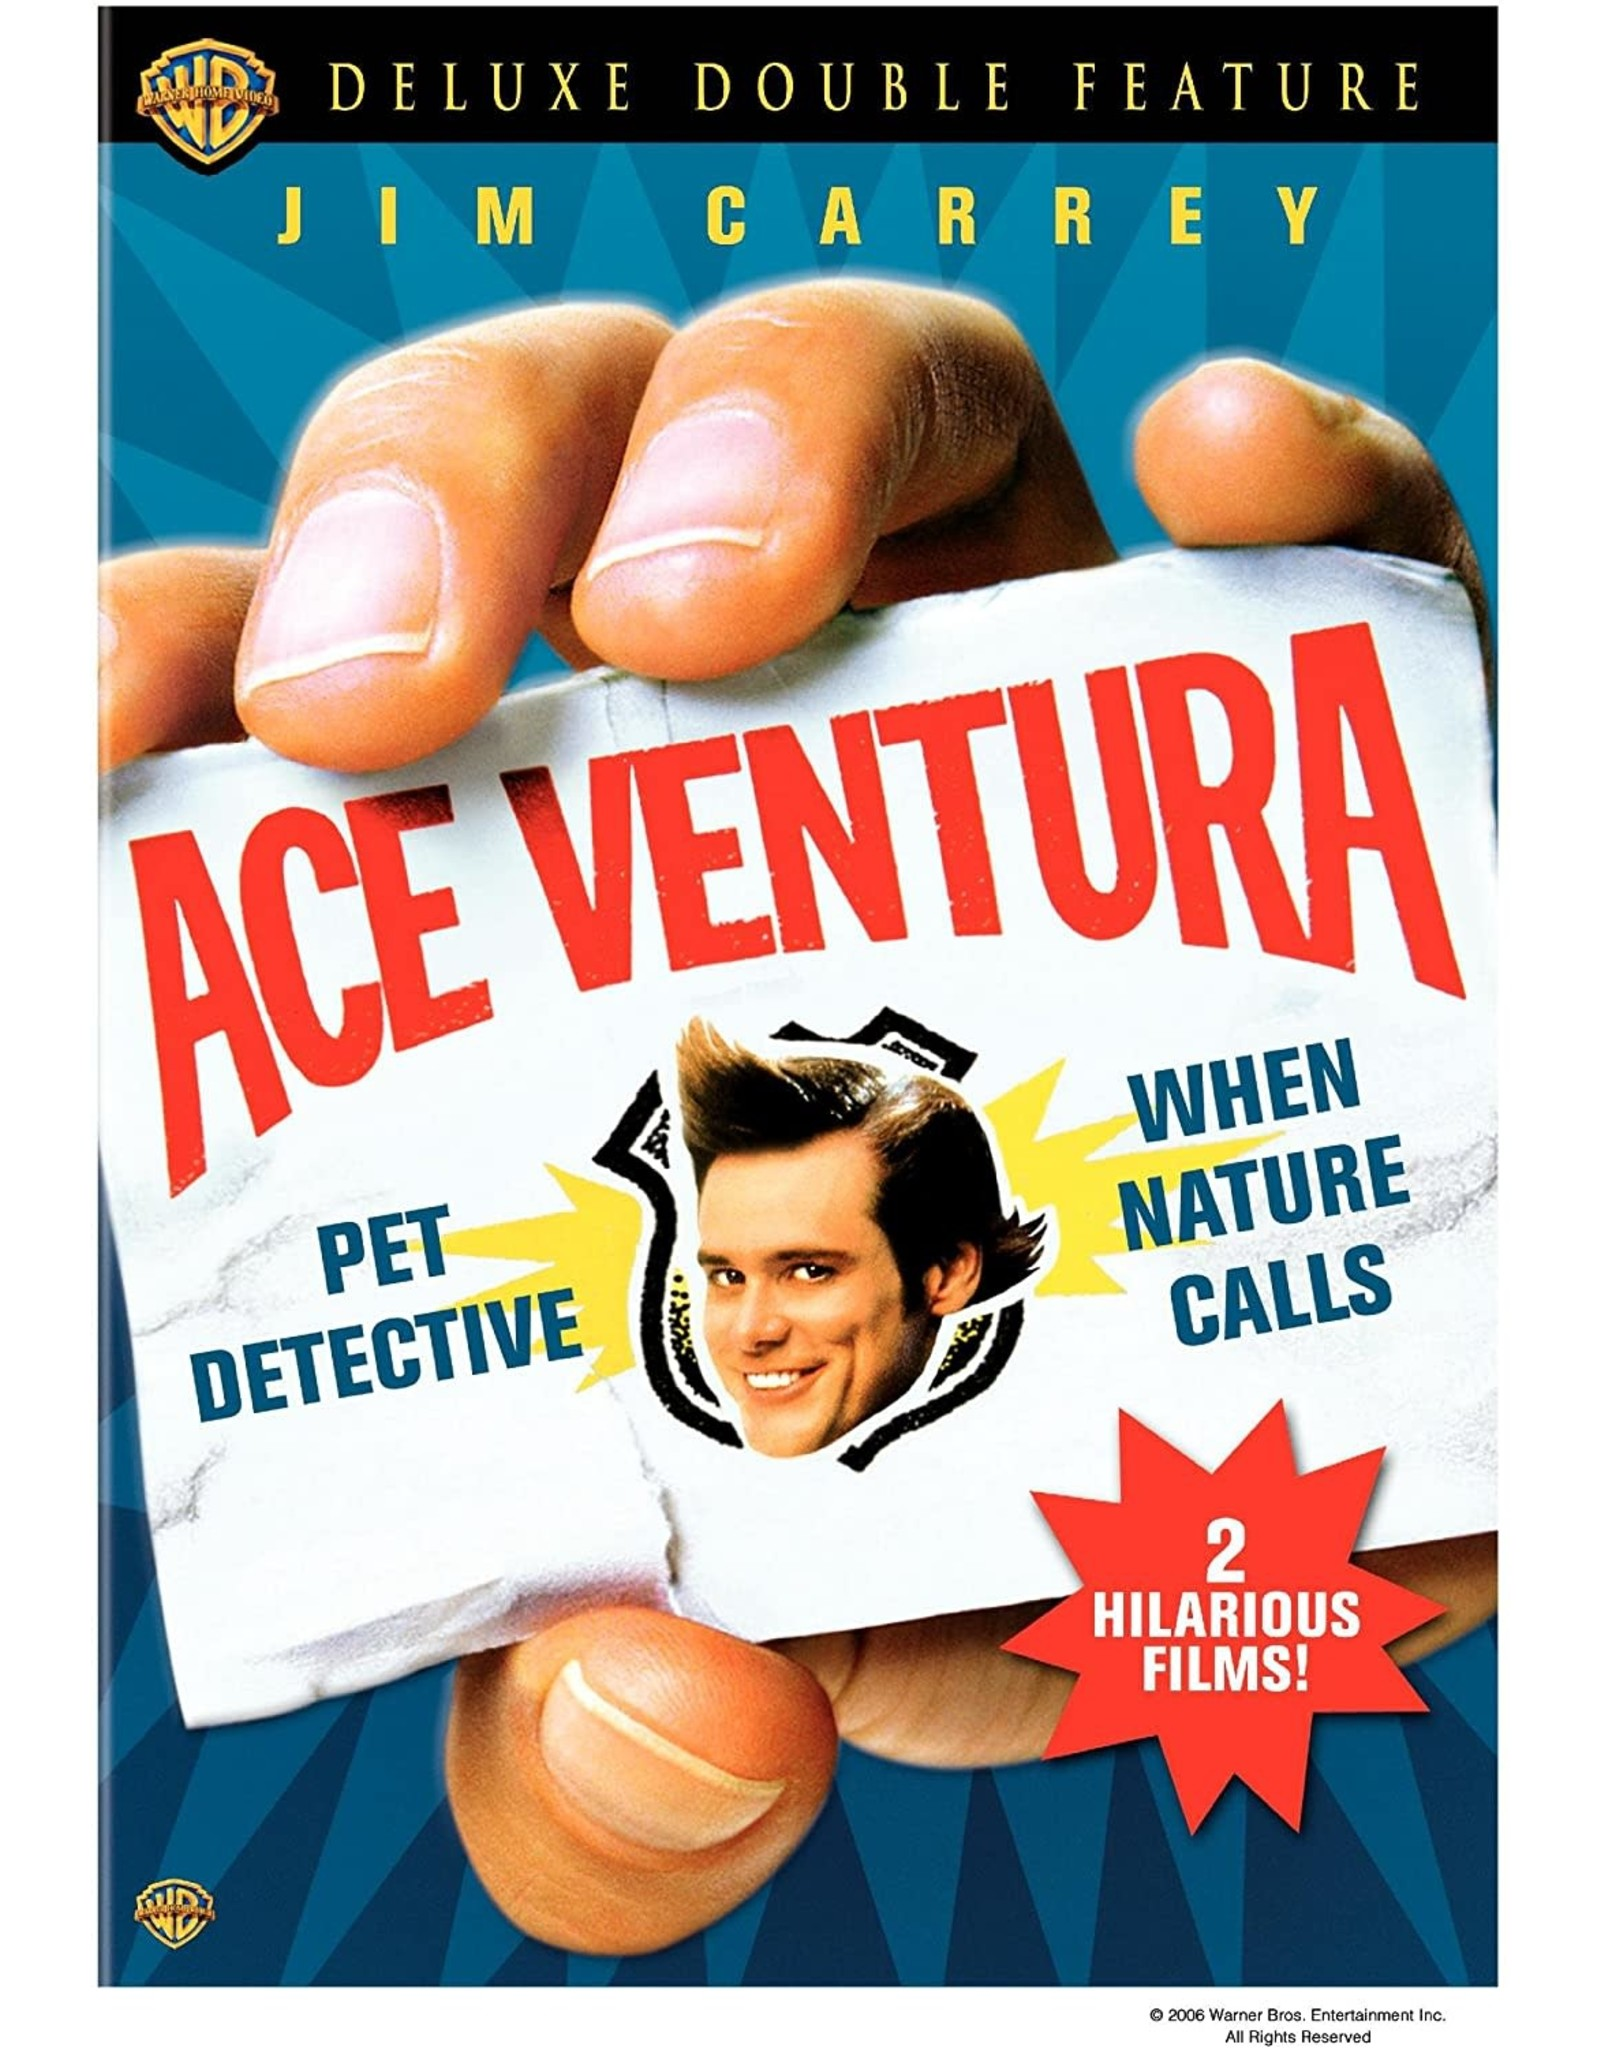 Cult and Cool Ace Ventura Deluxe Double Feature